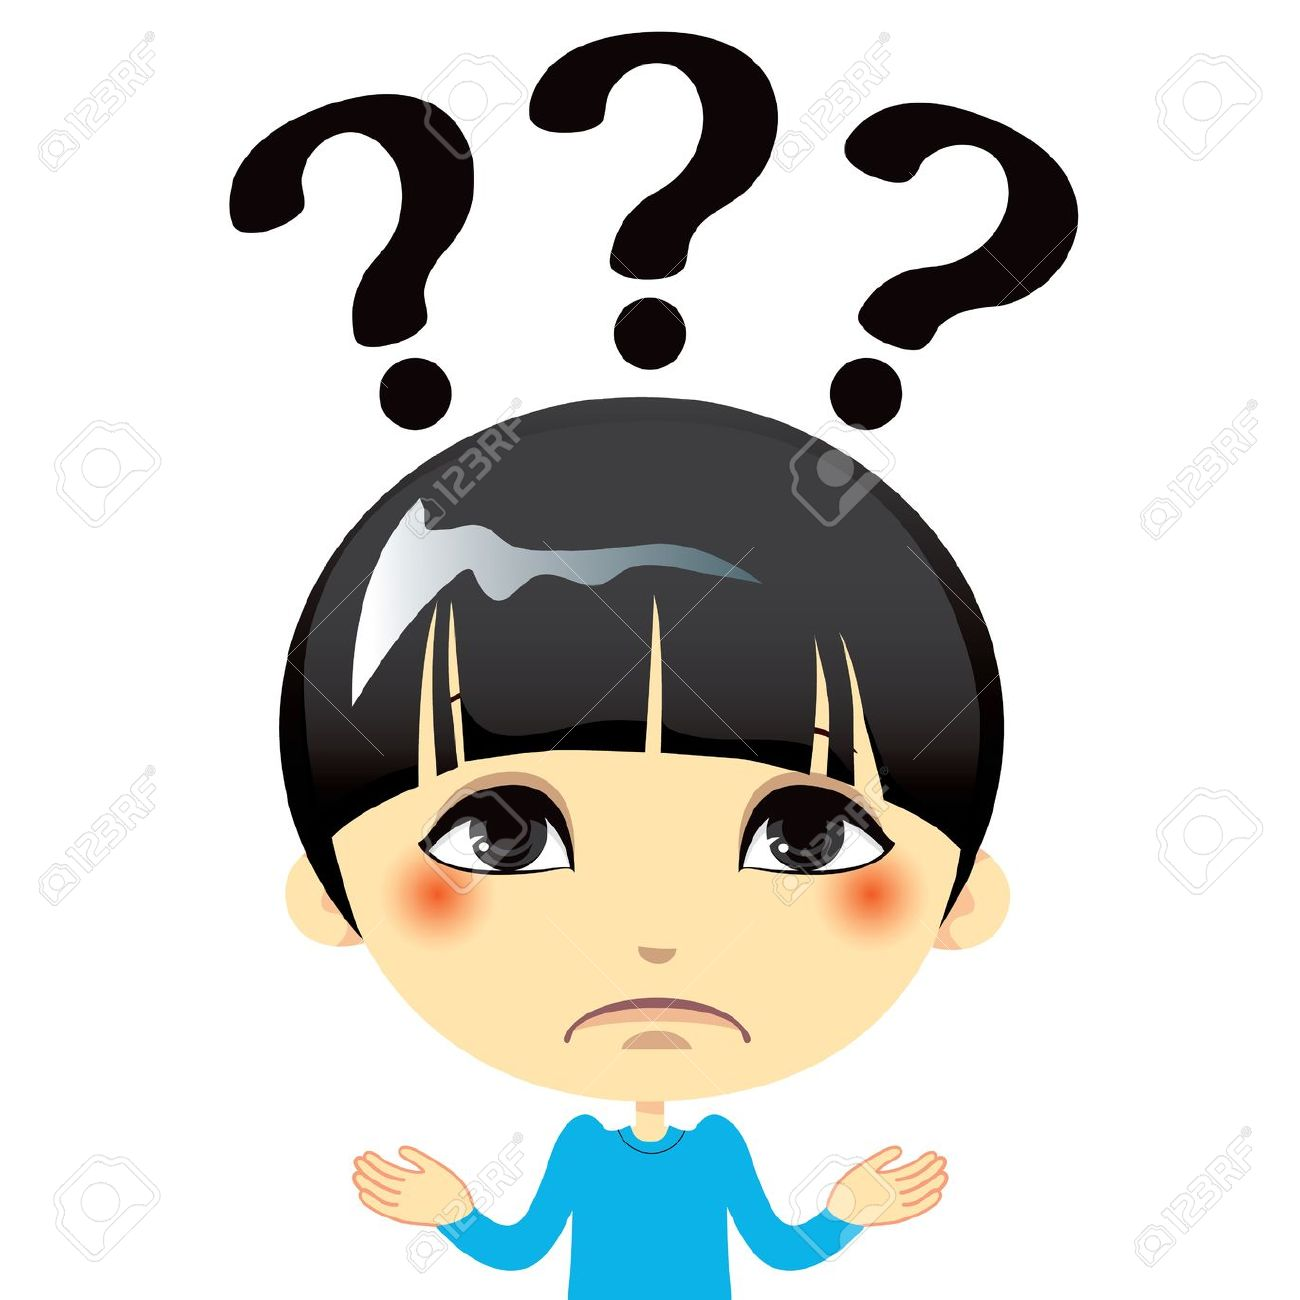 Confused kid in class clipart.